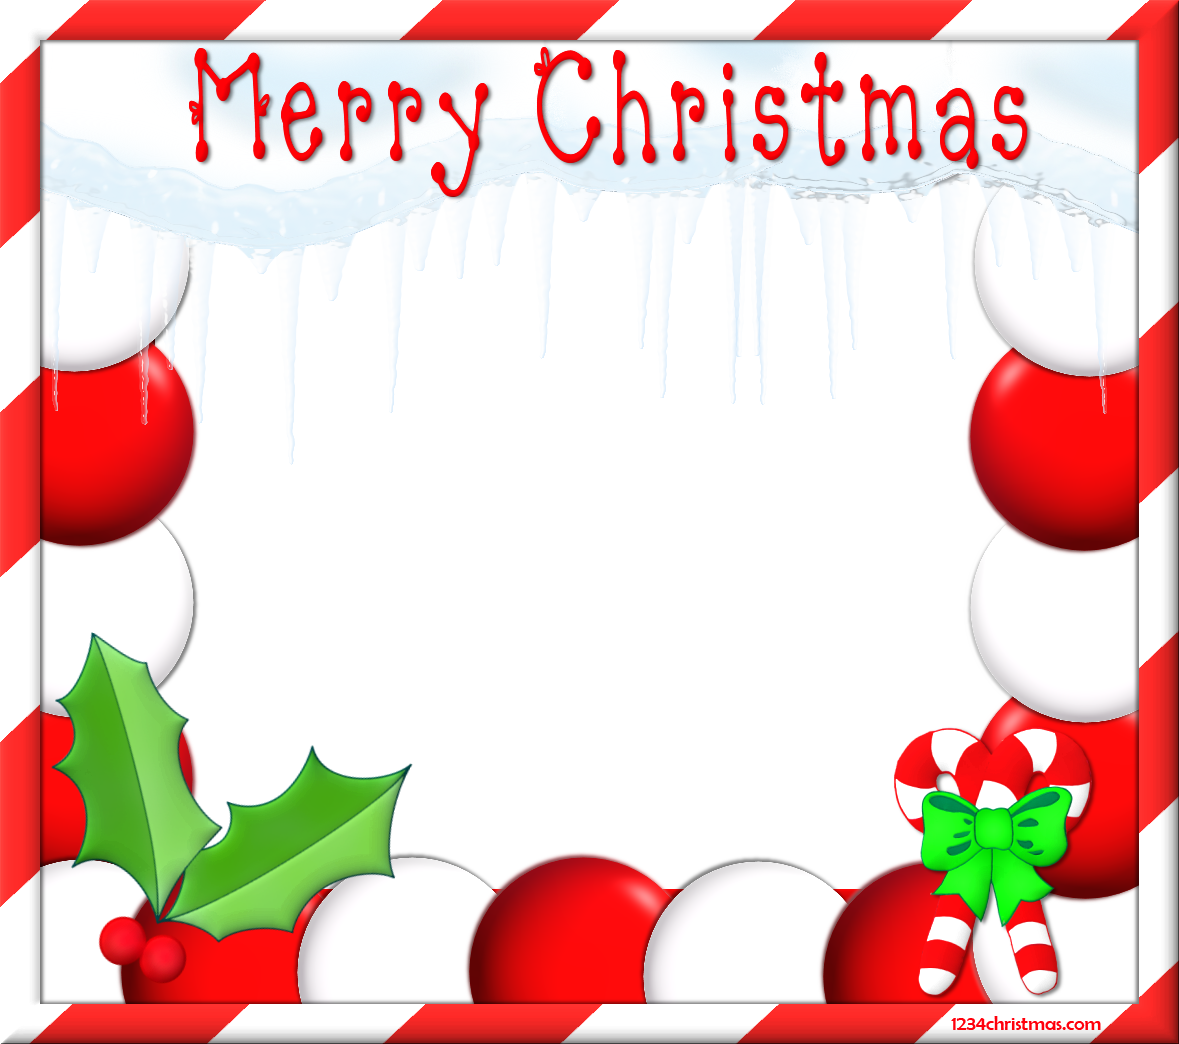 Xmas Free Christmas Photo Frame Templates for FREE Download   Merry ...